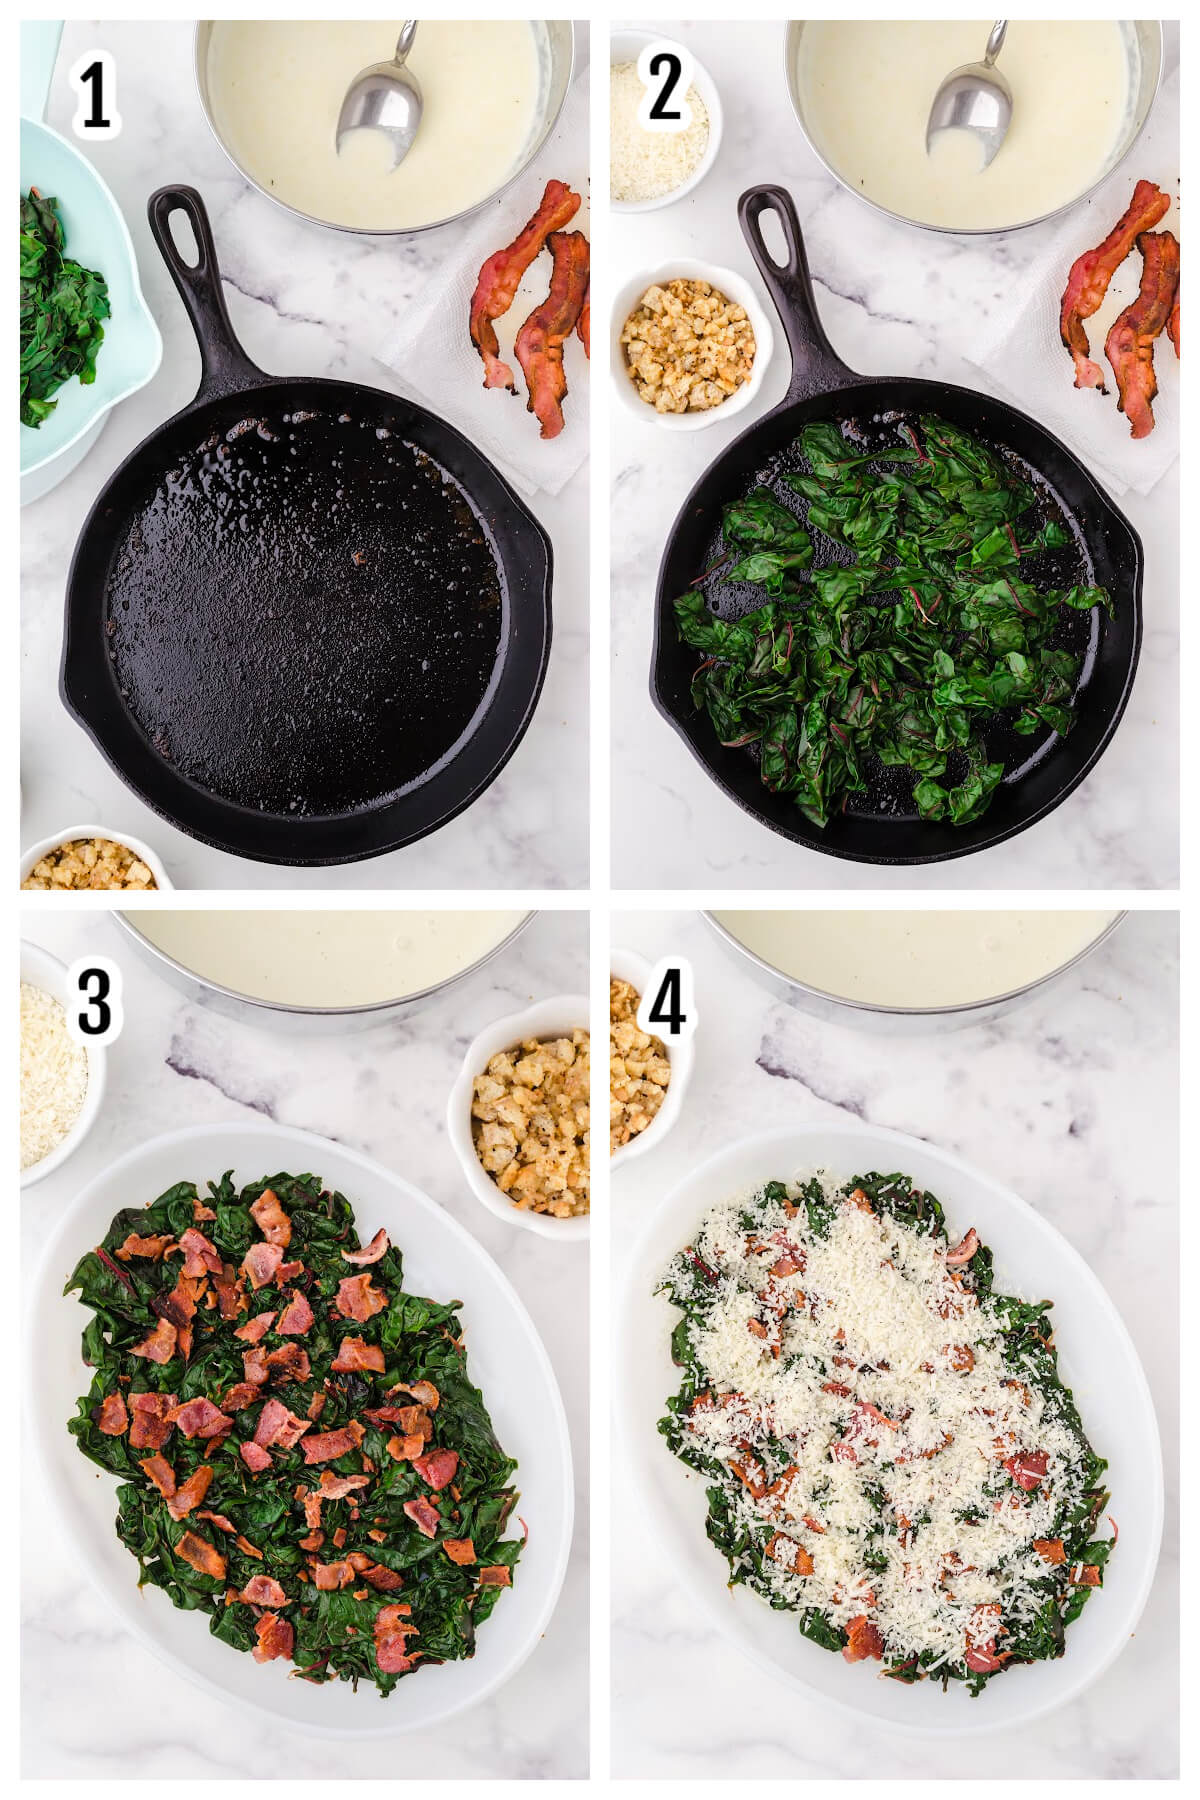 First set of Instructions for assembling the winter greens gratin recipe.